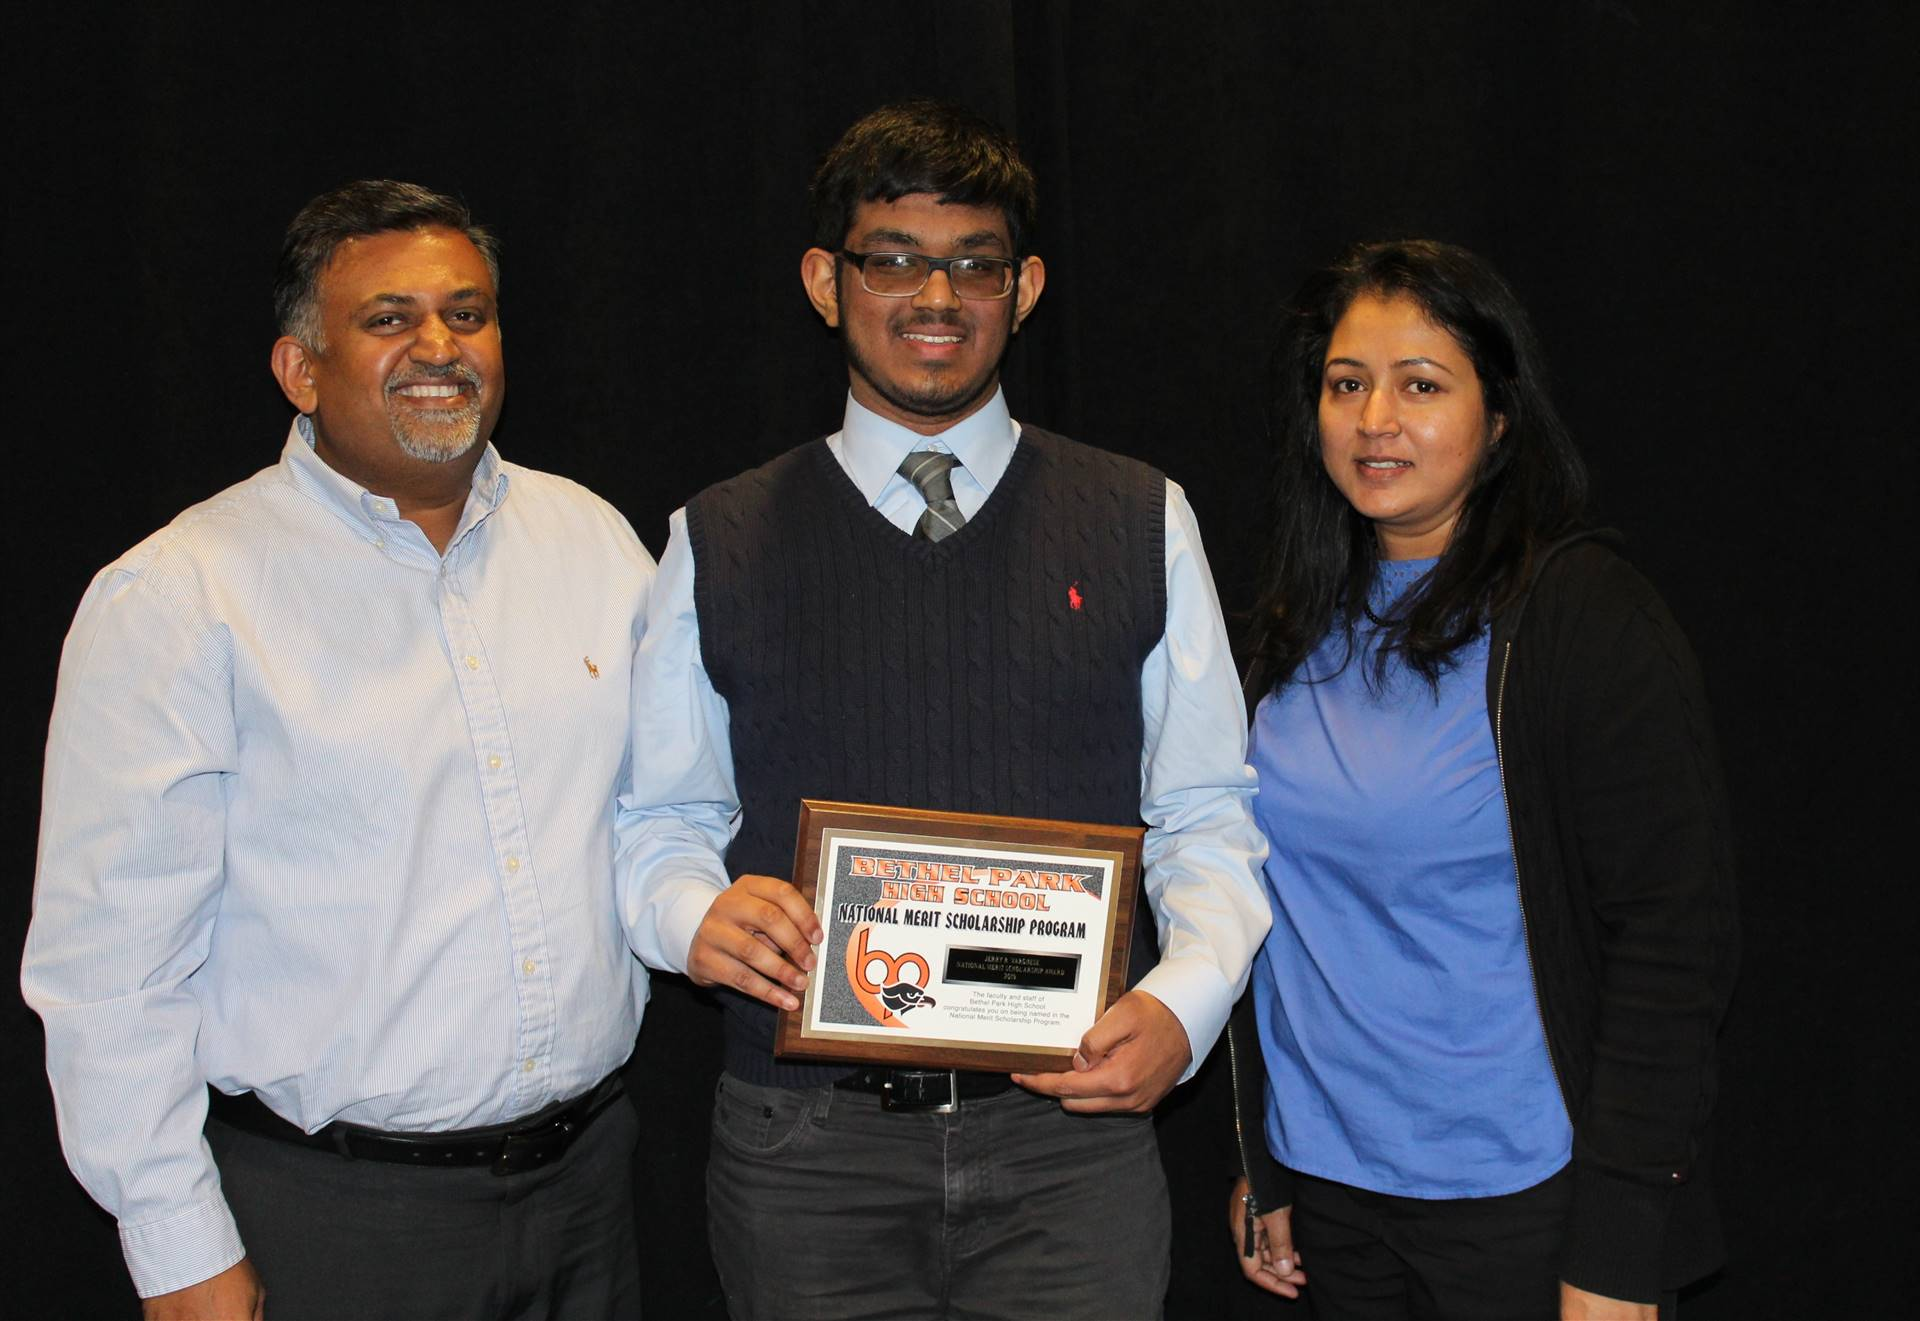 Jerry Varghese and his parents